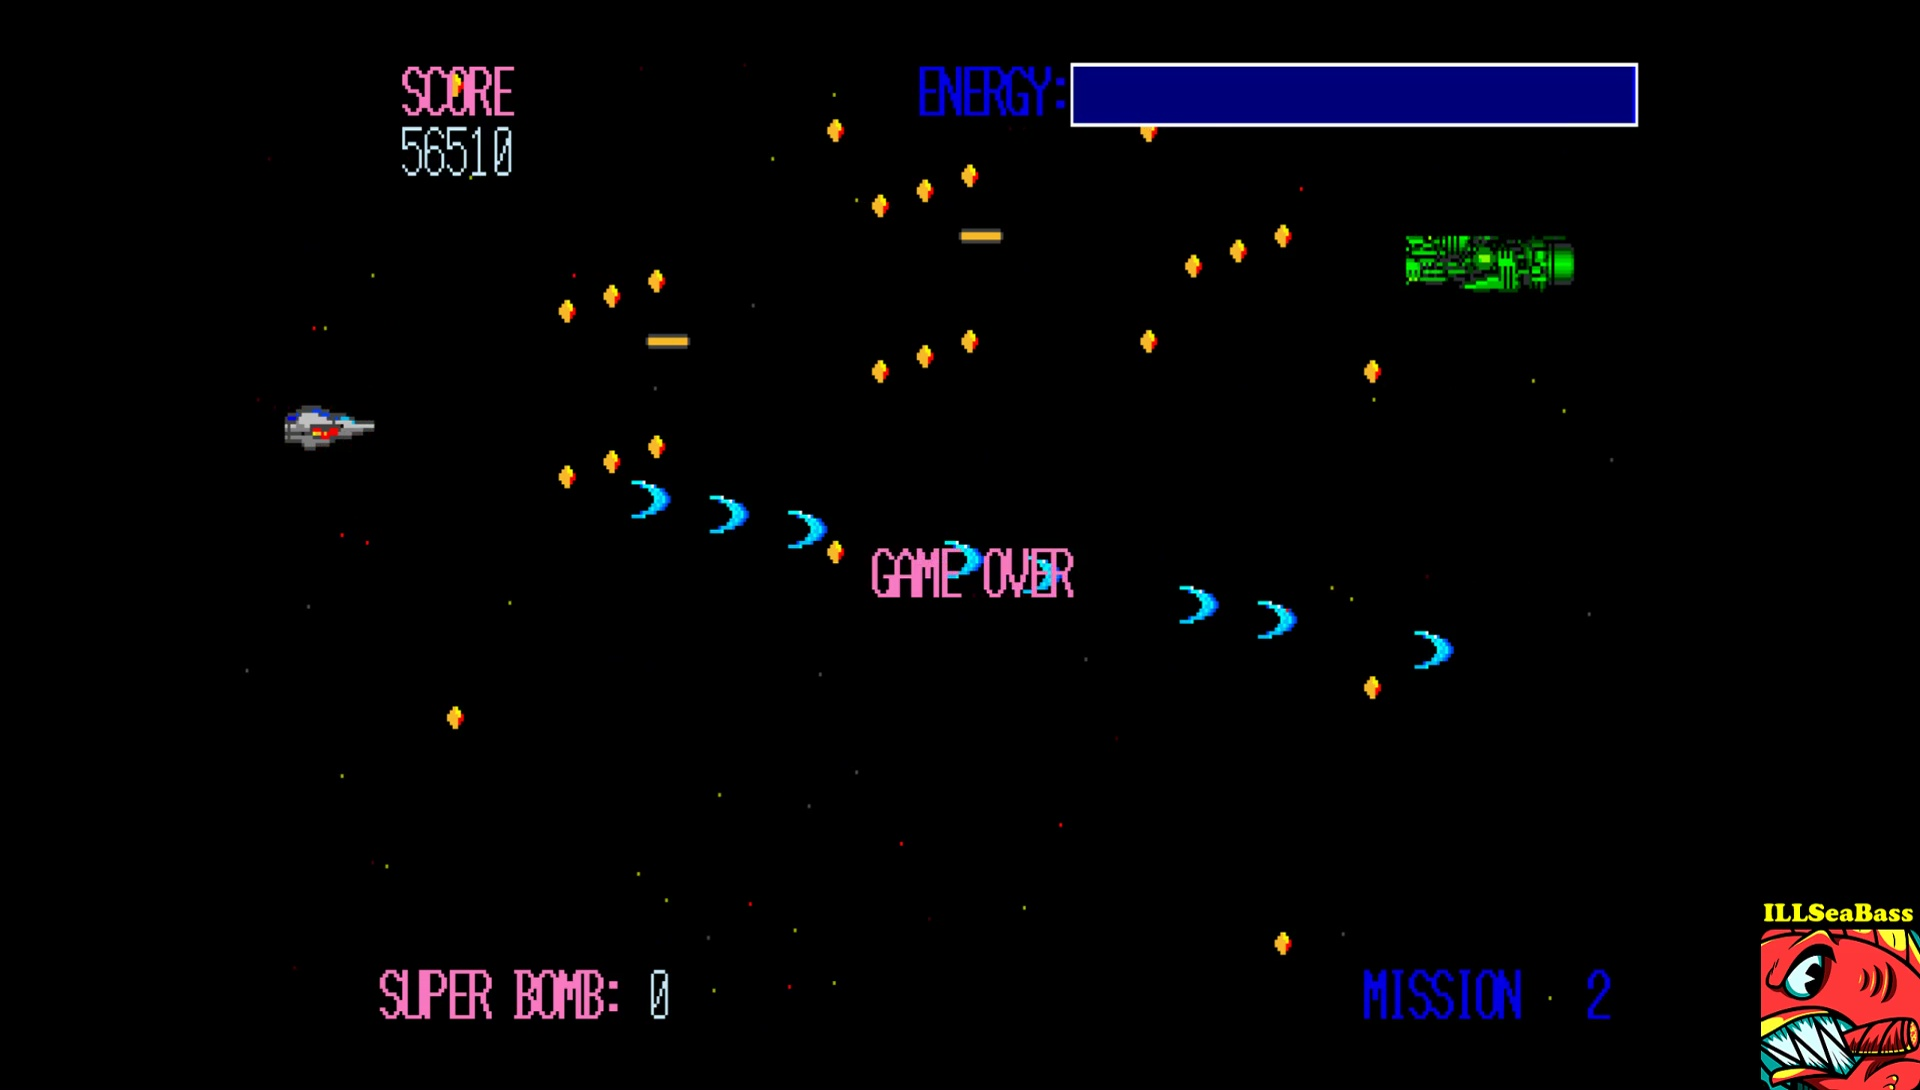 ILLSeaBass: Mission For Adult [Mission 1 Start] (Sharp X68000 Emulated) 56,510 points on 2017-03-14 21:03:02